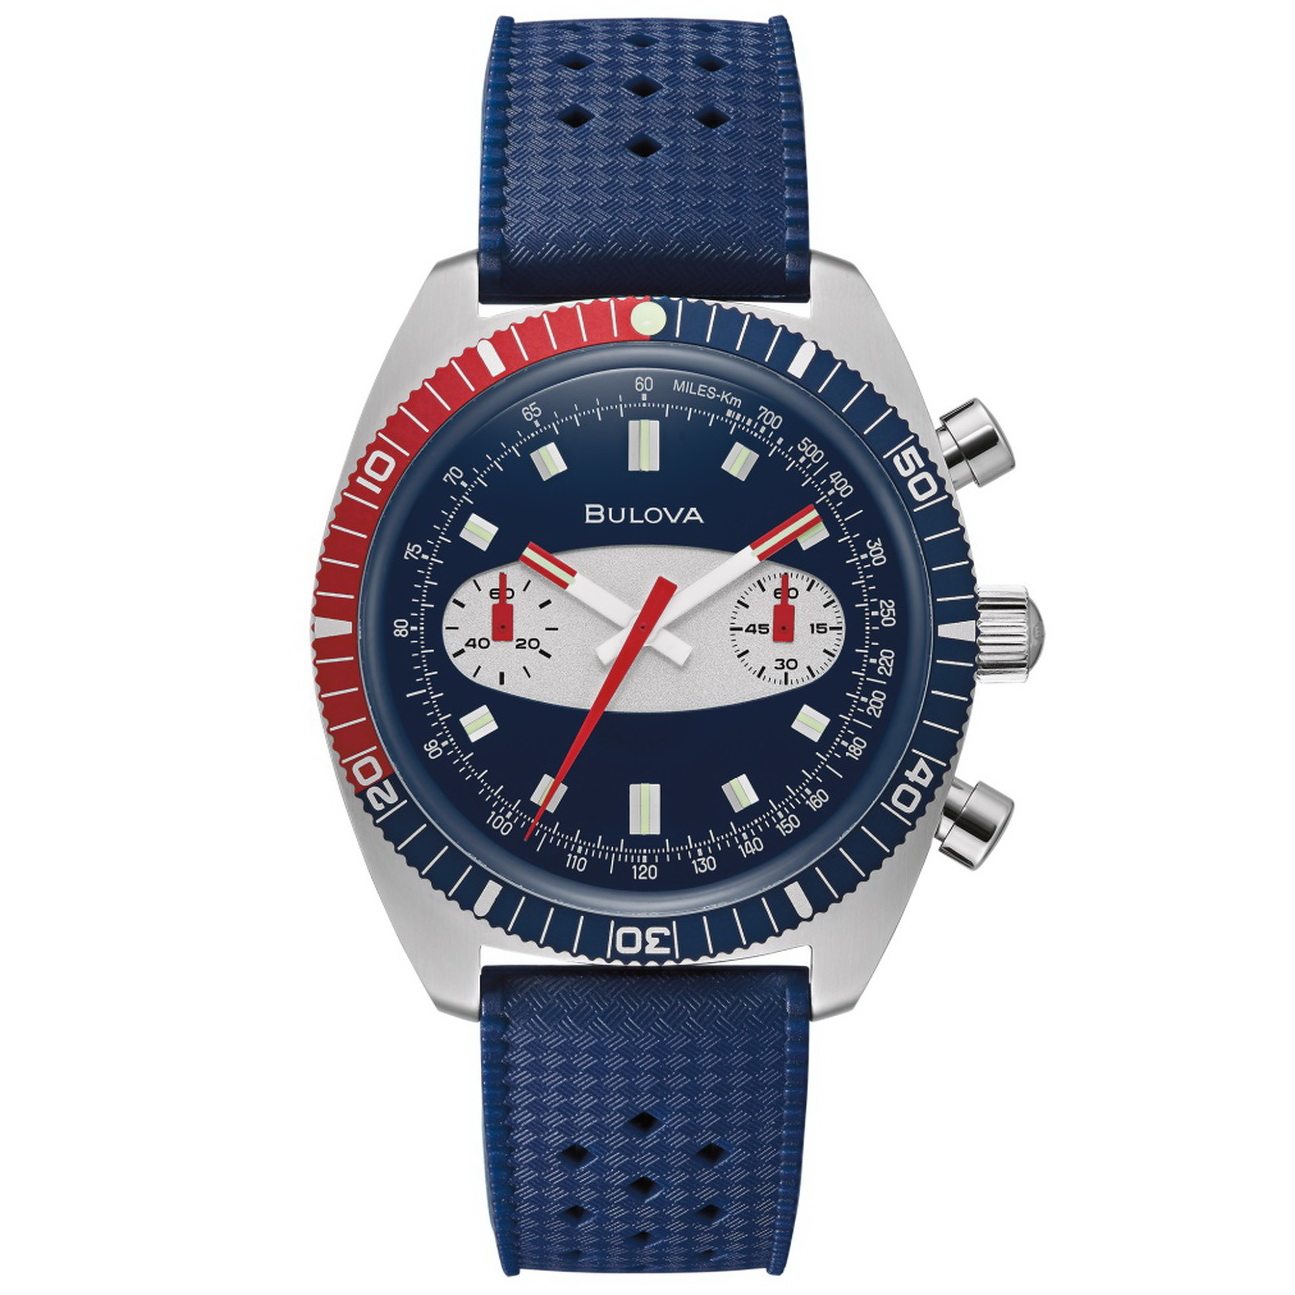 "Bulova's new Chronograph A ""Surfboards"" BULOVA+Chronograph+A+SURFBOARD+Limited+Edition+05"